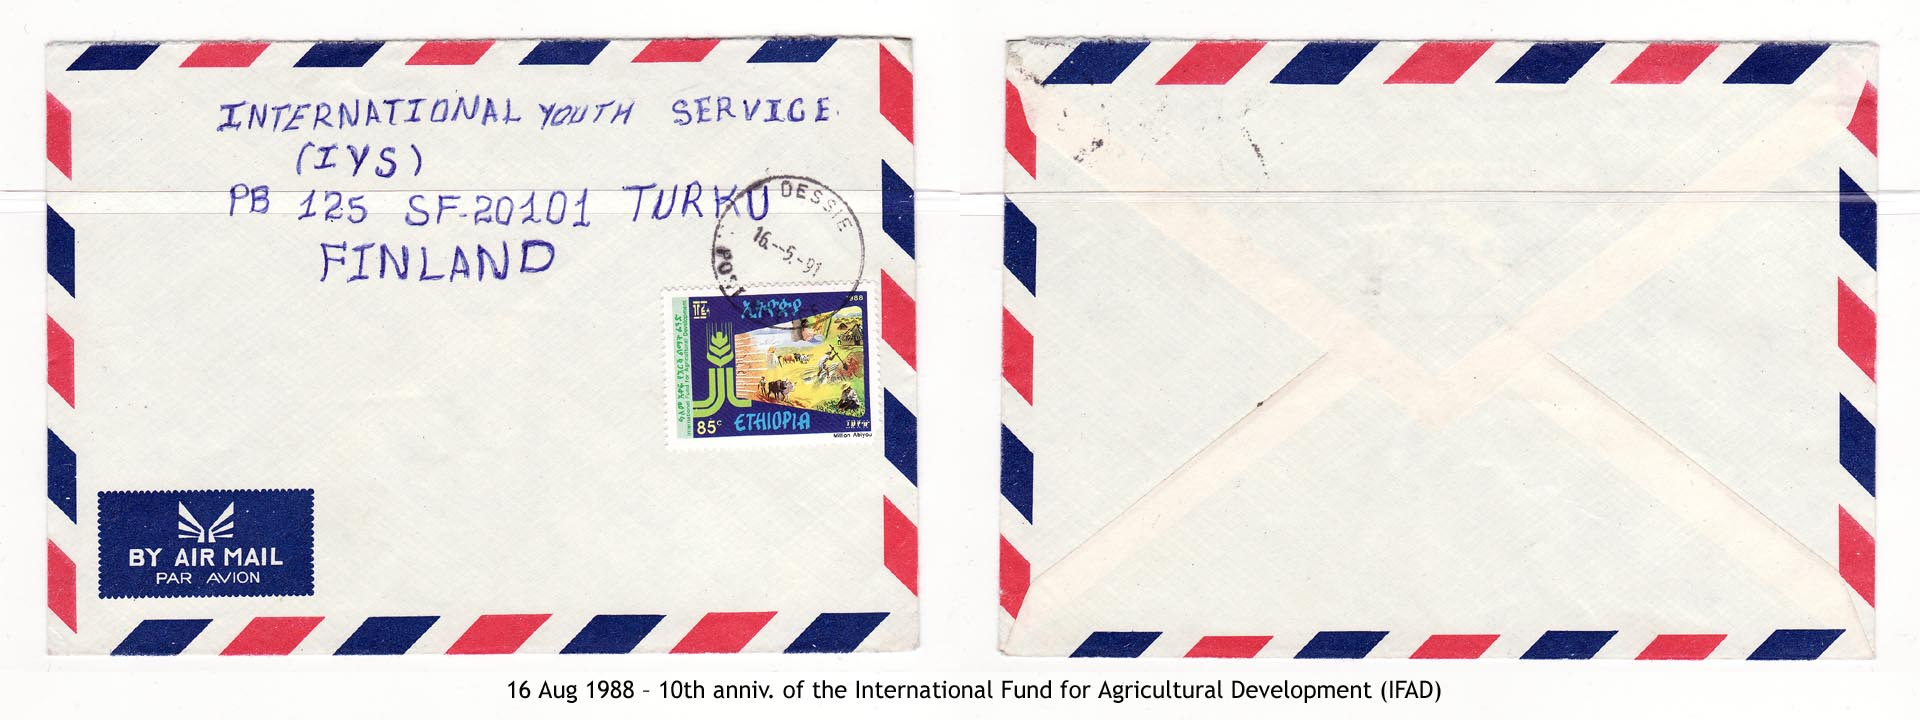 19880816 – 10th anniv. of the International Fund for Agricultural Development (IFAD)